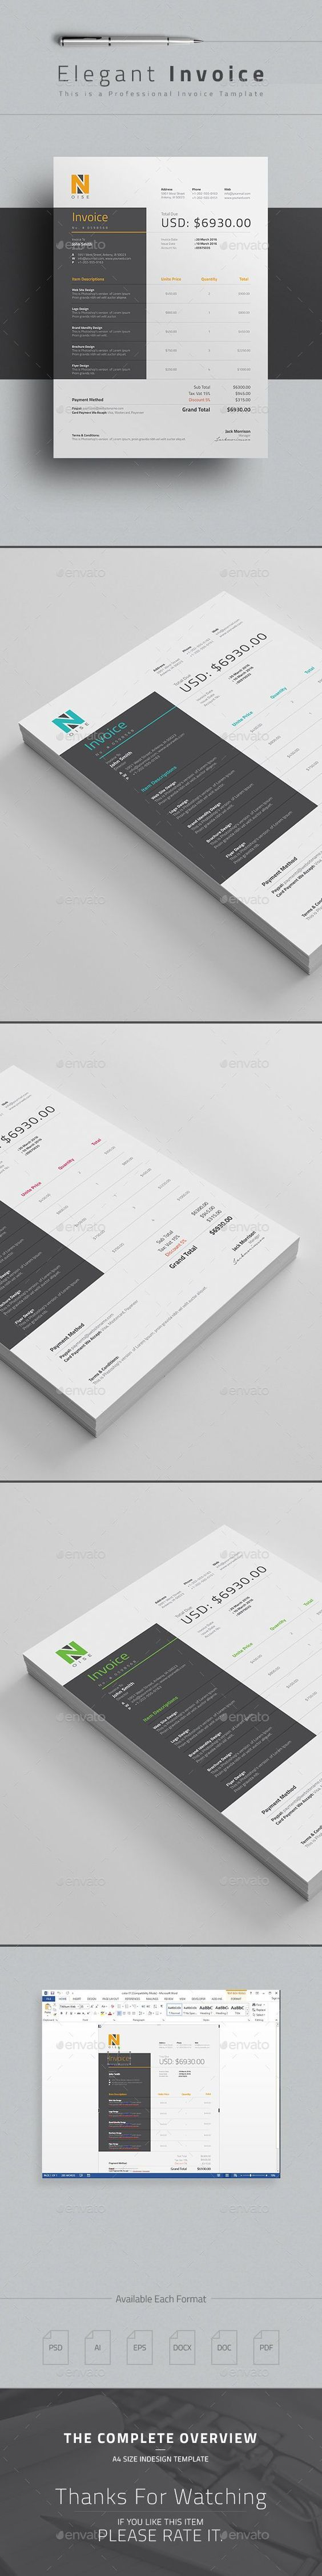 Best Invoices Images On   Proposal Templates Invoice